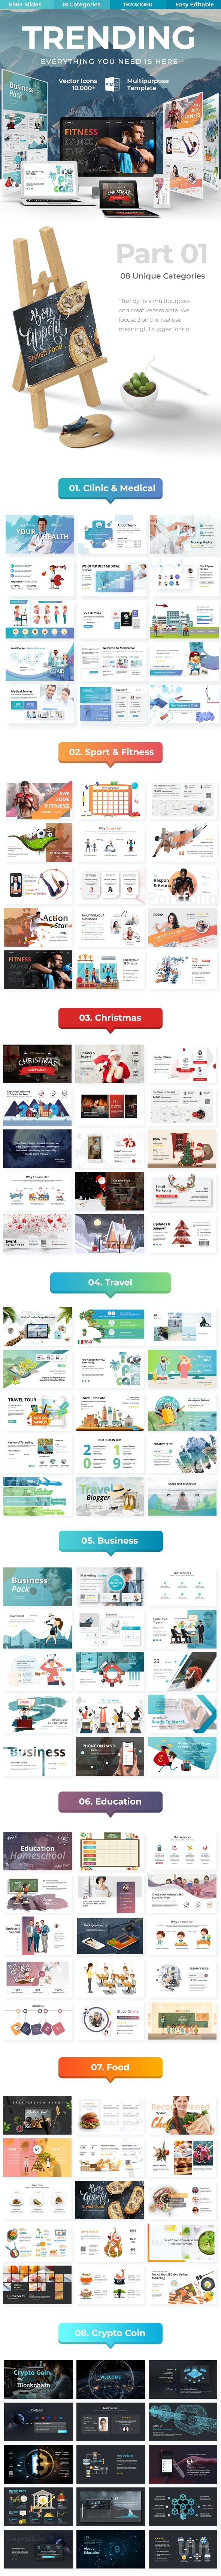 Trending Multipurpose Powerpoint Template - Miscellaneous PowerPoint Templates